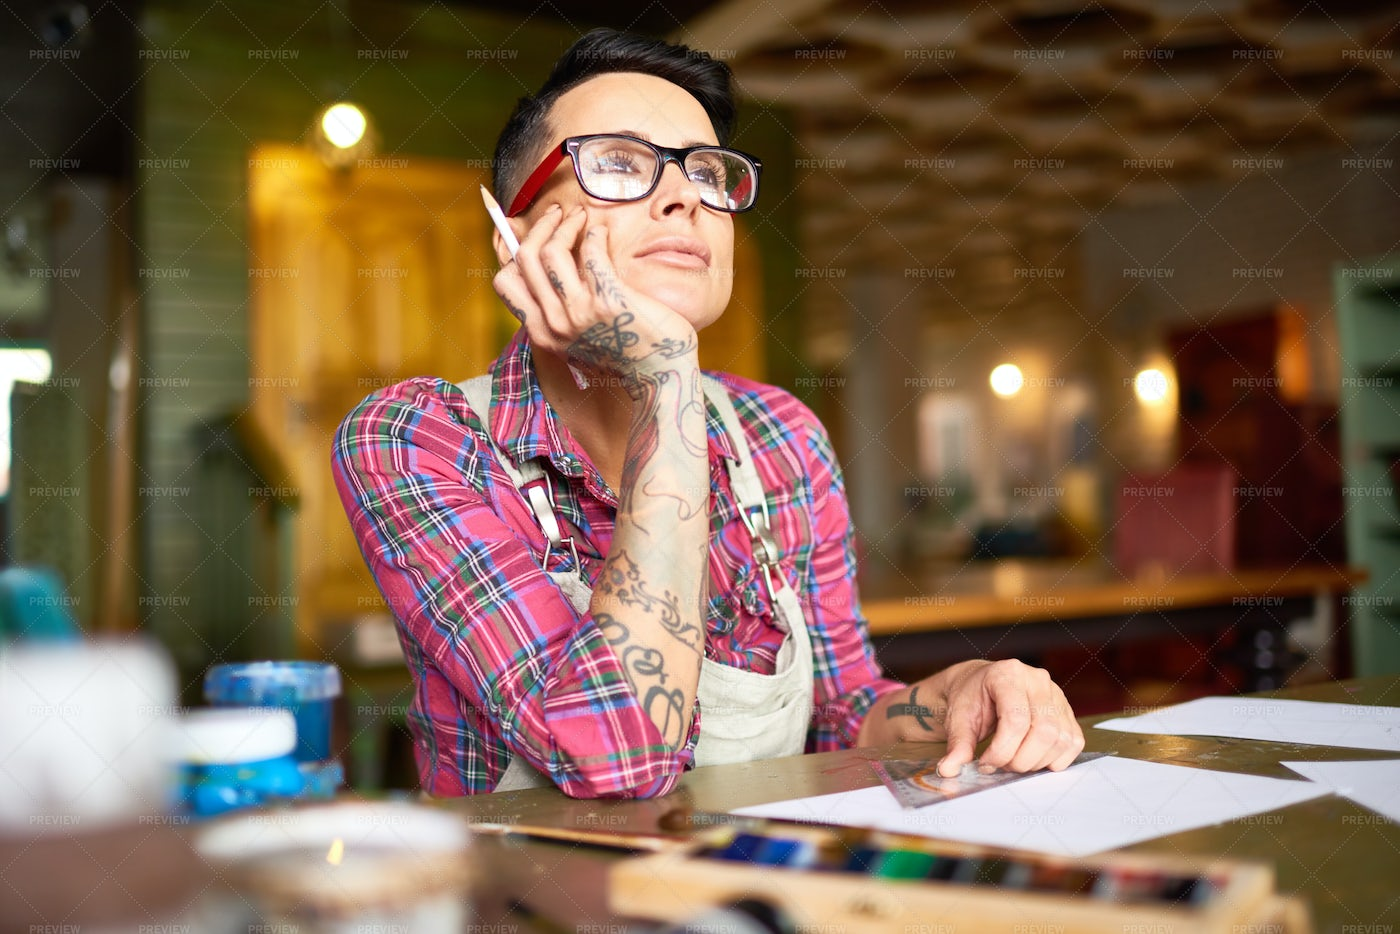 Tattooed Woman Daydreaming In Art...: Stock Photos